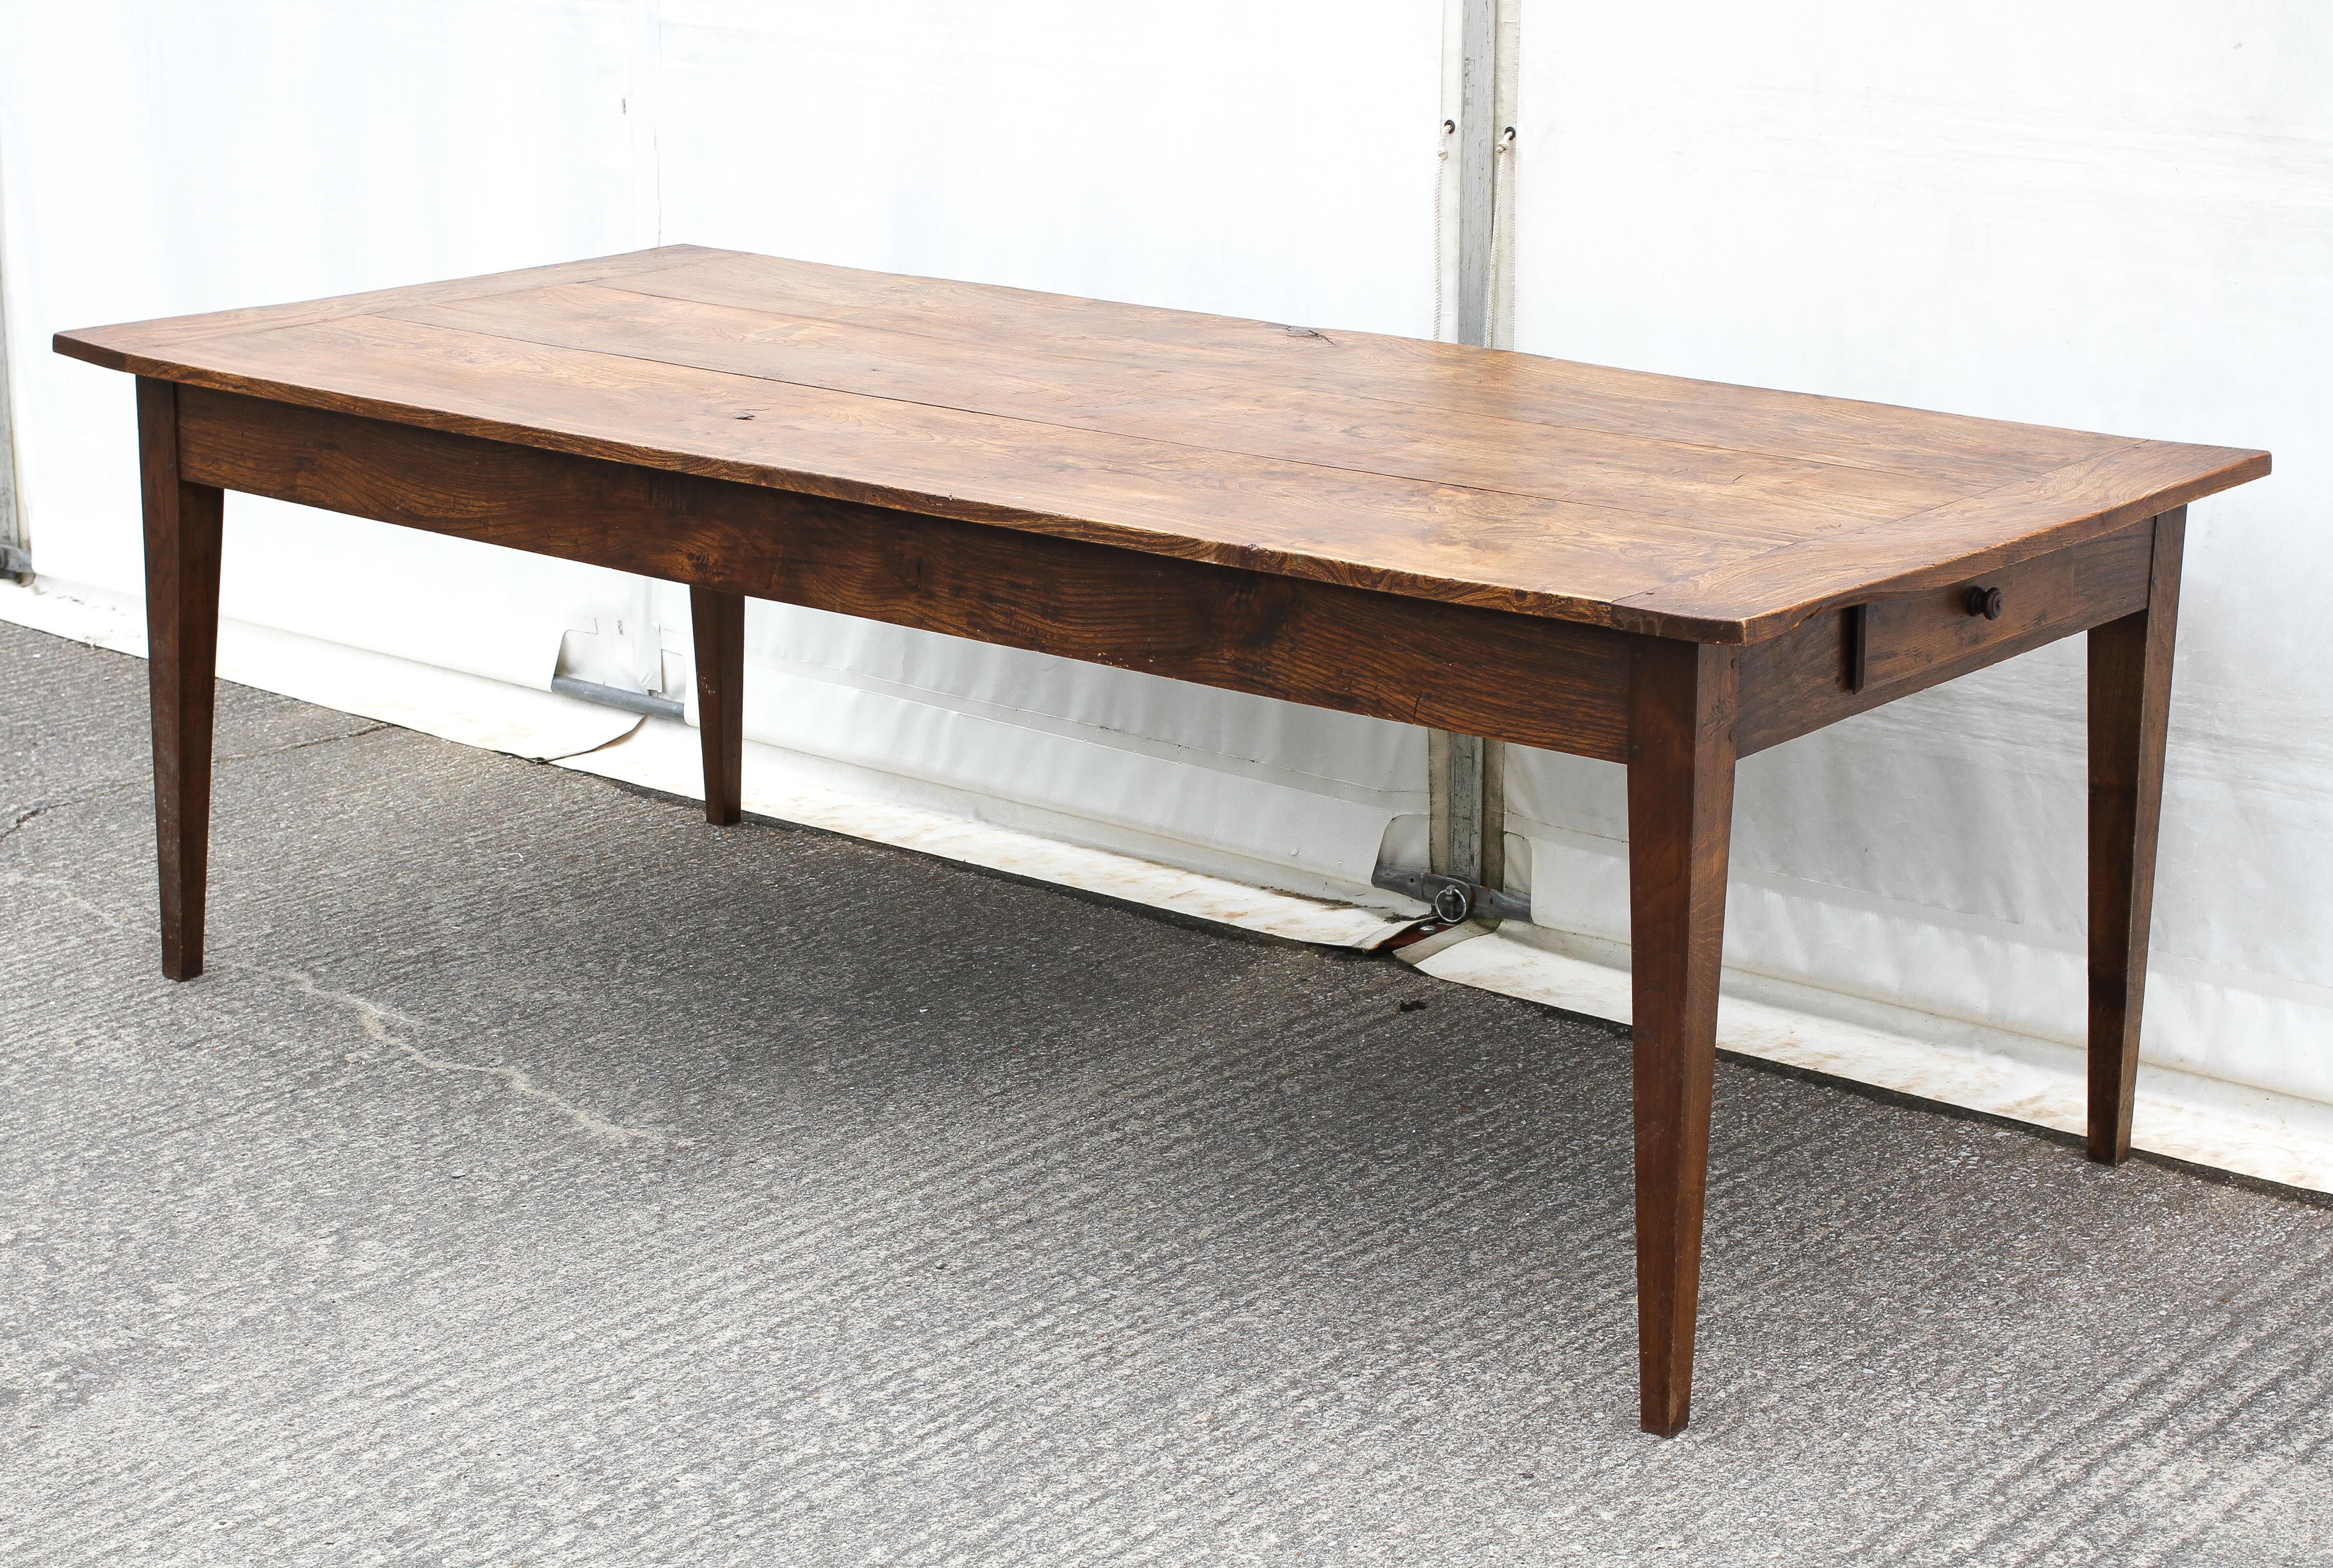 An elm refectory table, possibly French, the cleated, - Image 4 of 5